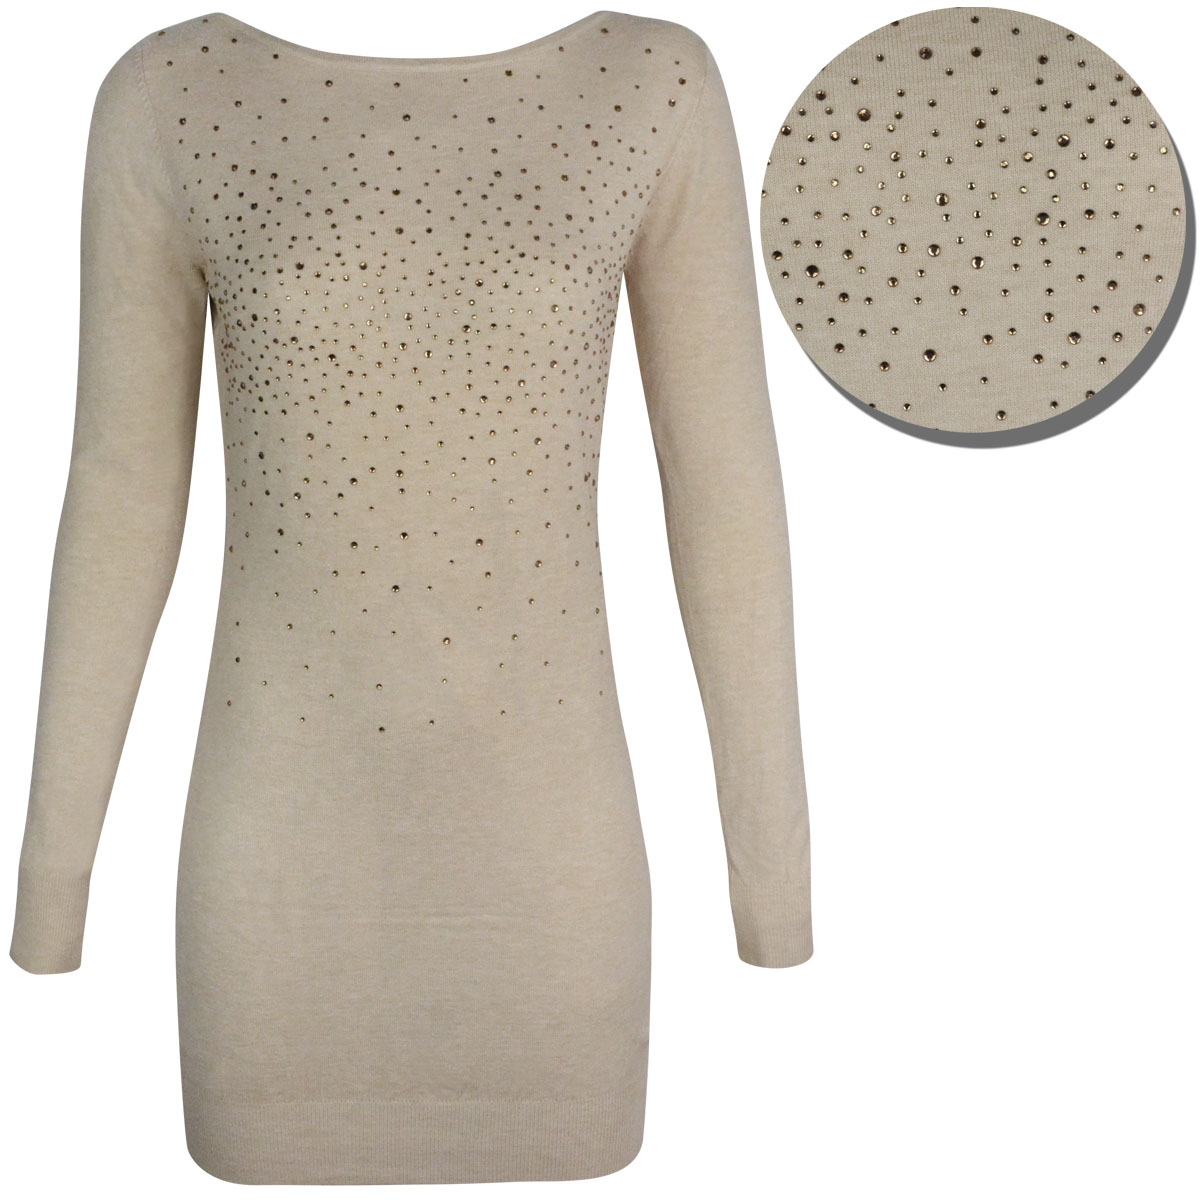 Find great deals on eBay for winter jumpers ladies. Shop with confidence. Skip to main content. eBay: New Winter Womens Ladies mohair Loose Sweater puff sleeve Coat Fluffy Jumper han. Brand New · Unbranded. Womens Winter Long Sleeve Jumper Tops Ladies Loose Knitted Sweater Mini Dress US. Brand New · Unbranded. $